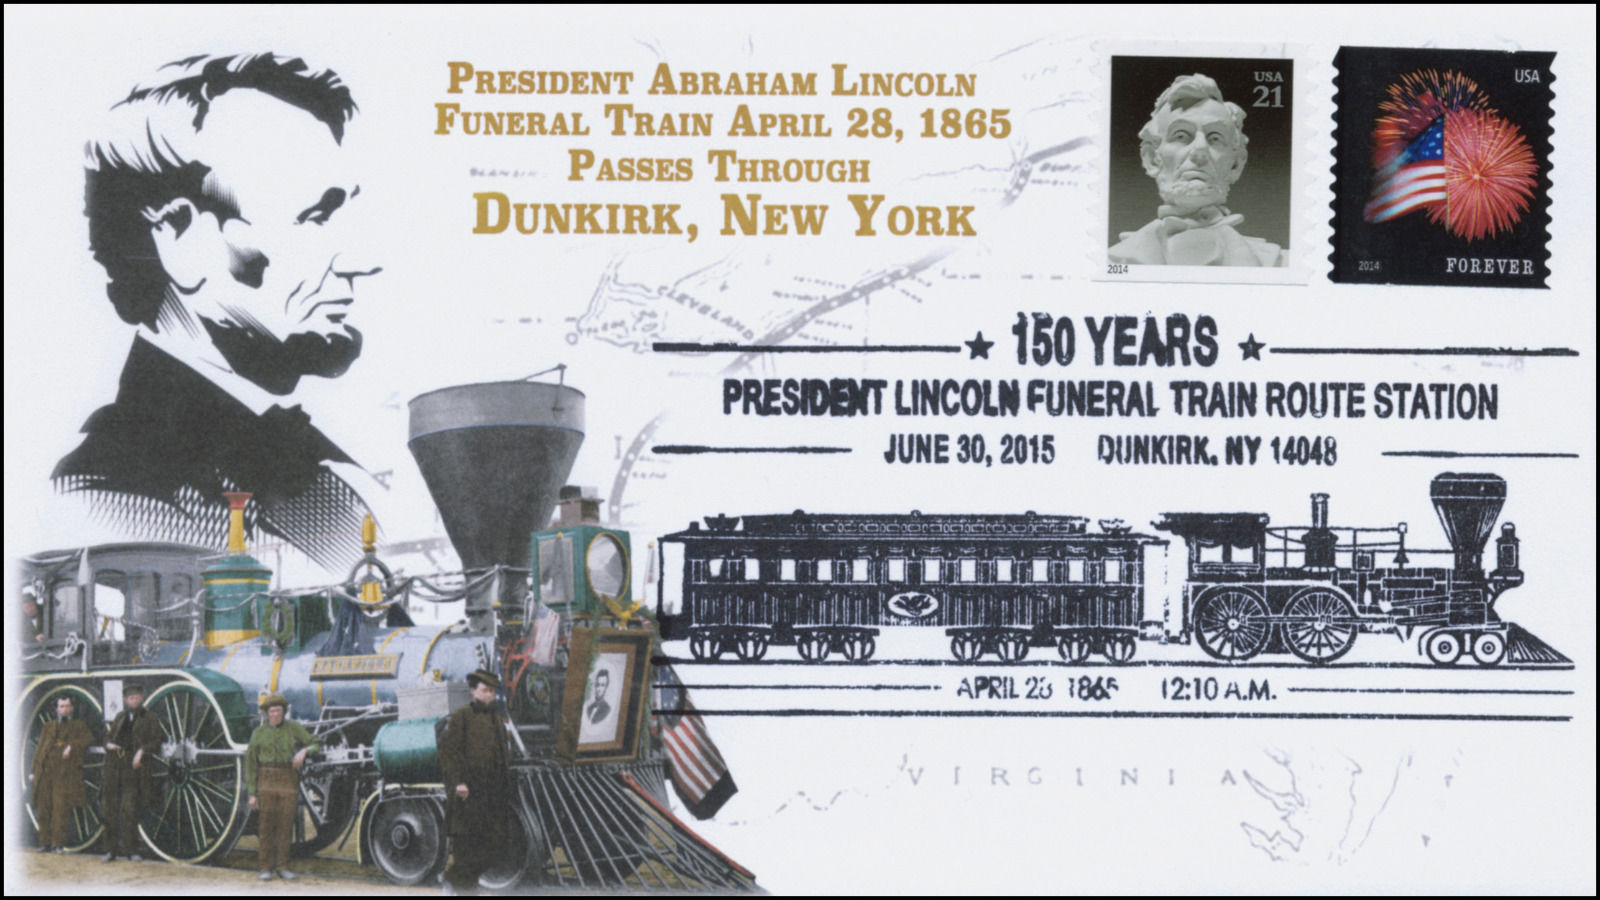 2015 President Lincoln Funeral Train Route Pictorial Dunkirk Ny